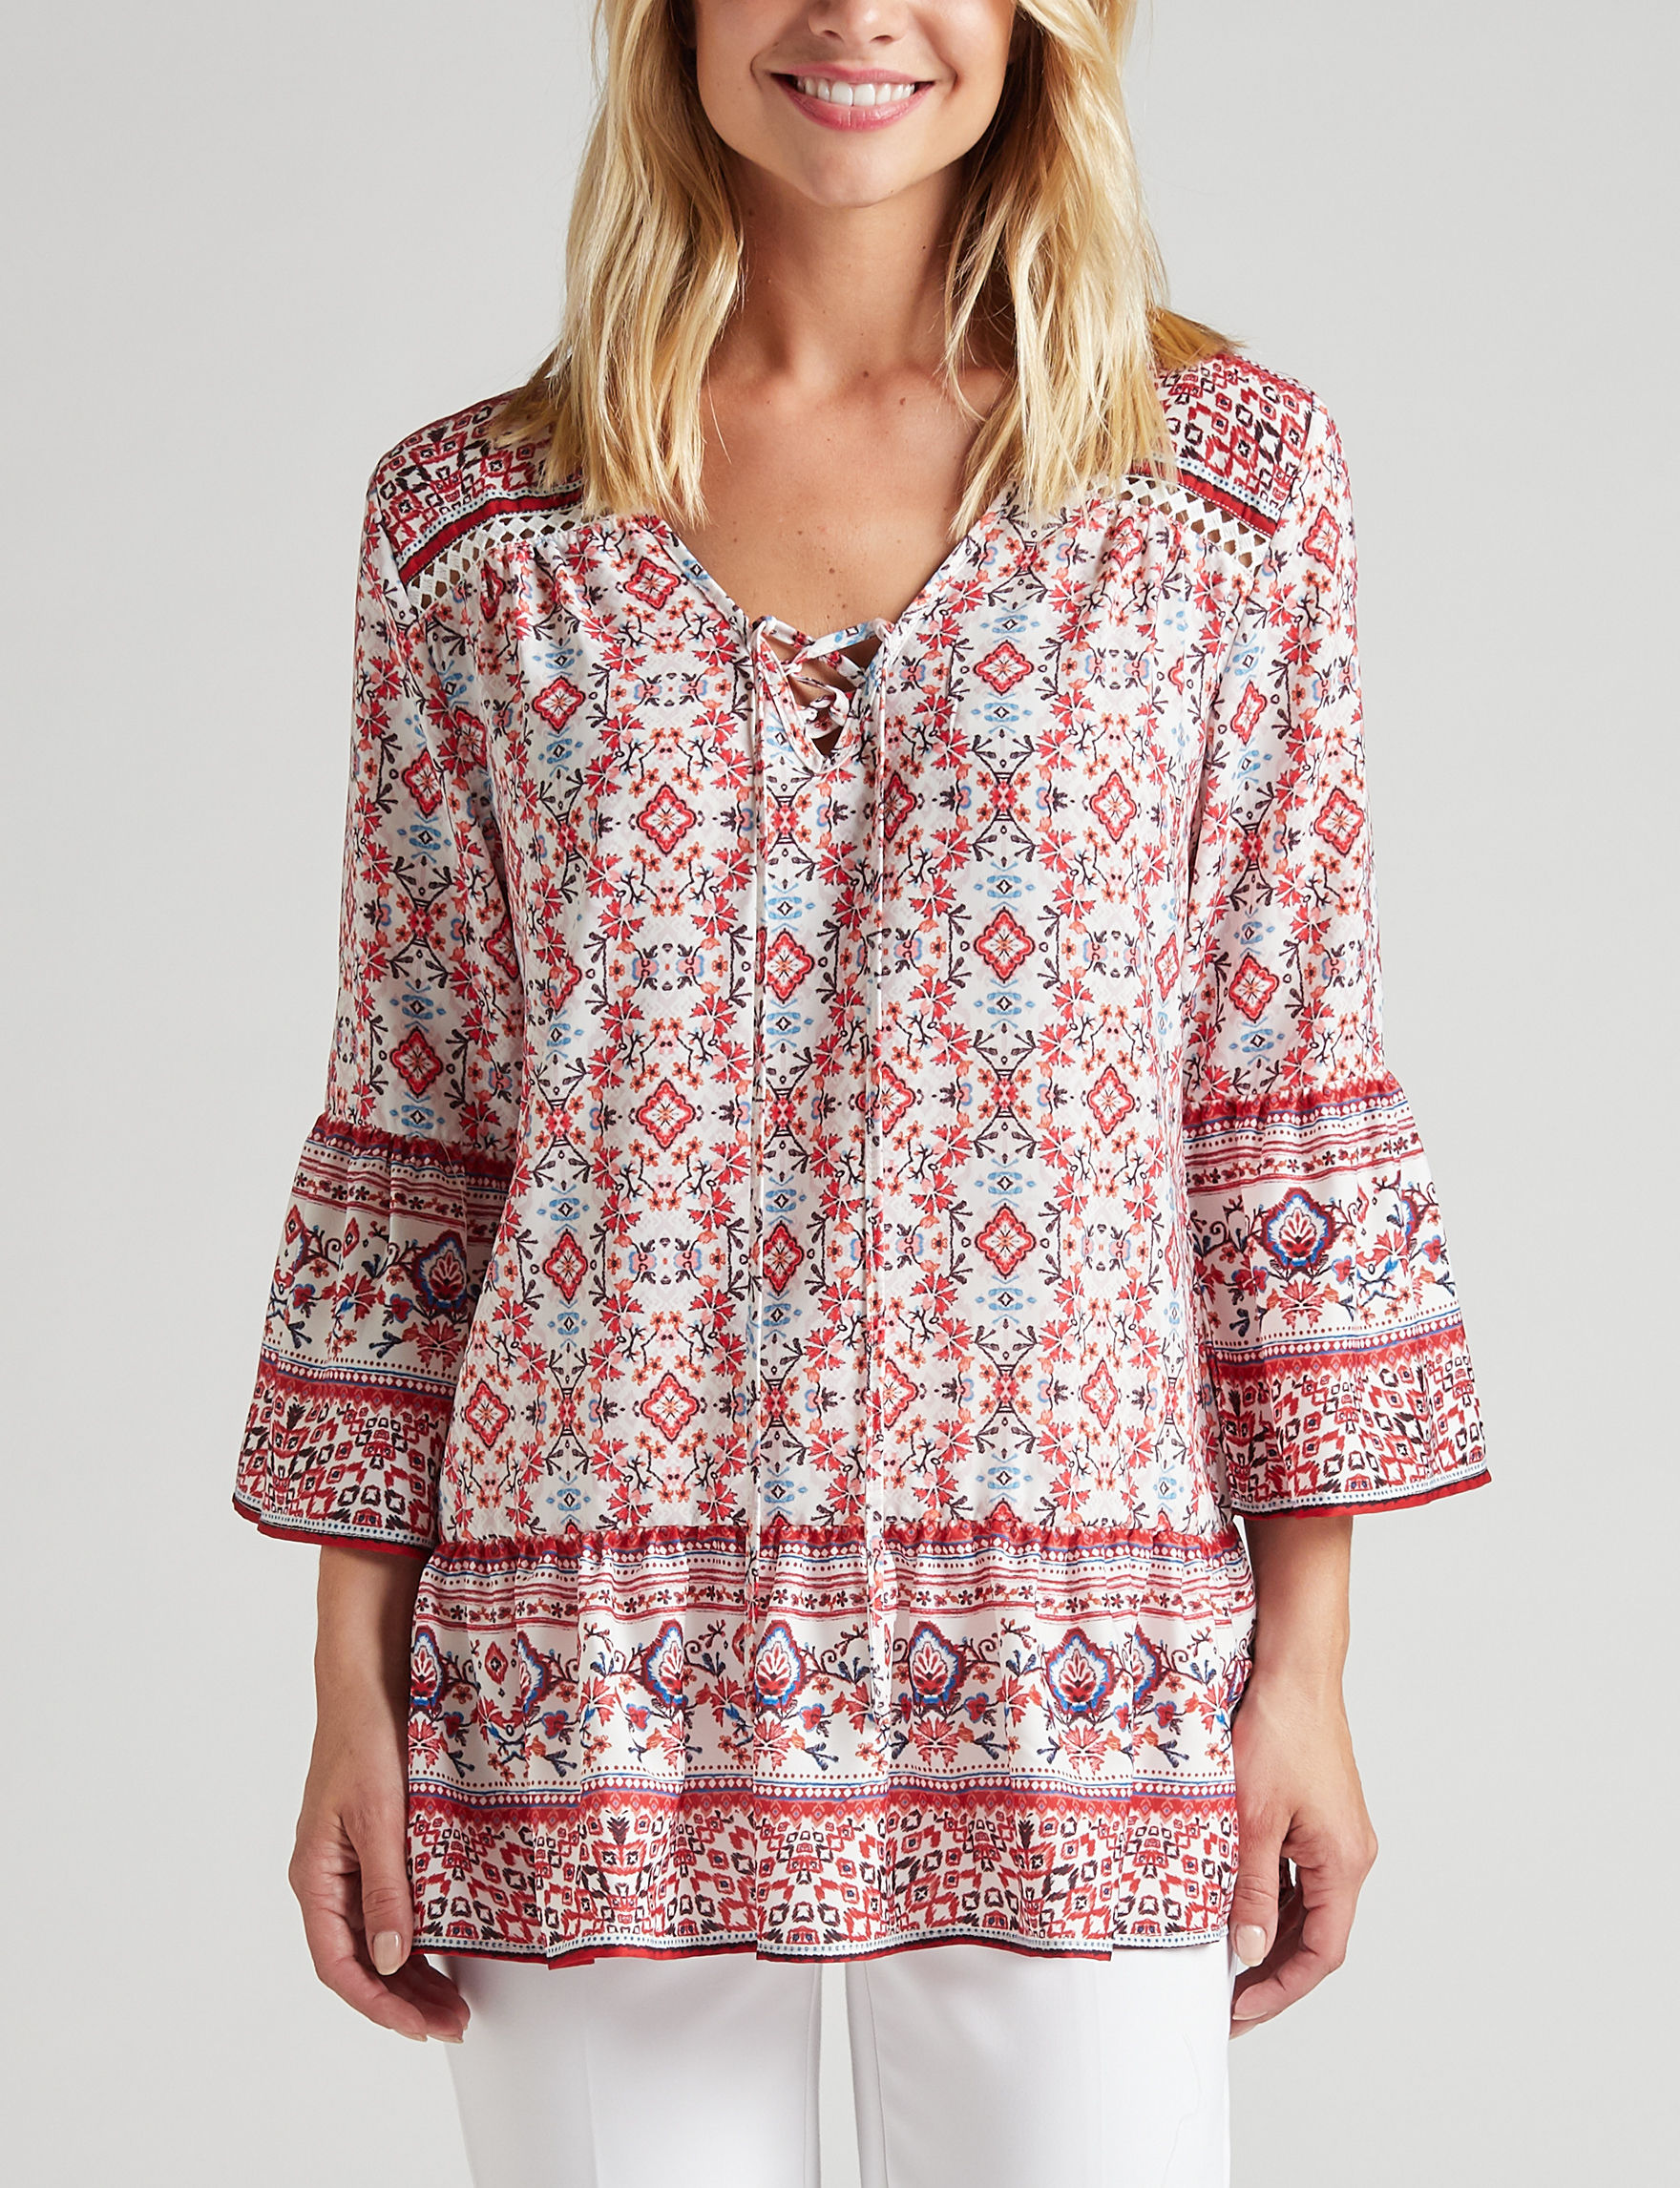 Sunny Leigh Red Floral Shirts & Blouses